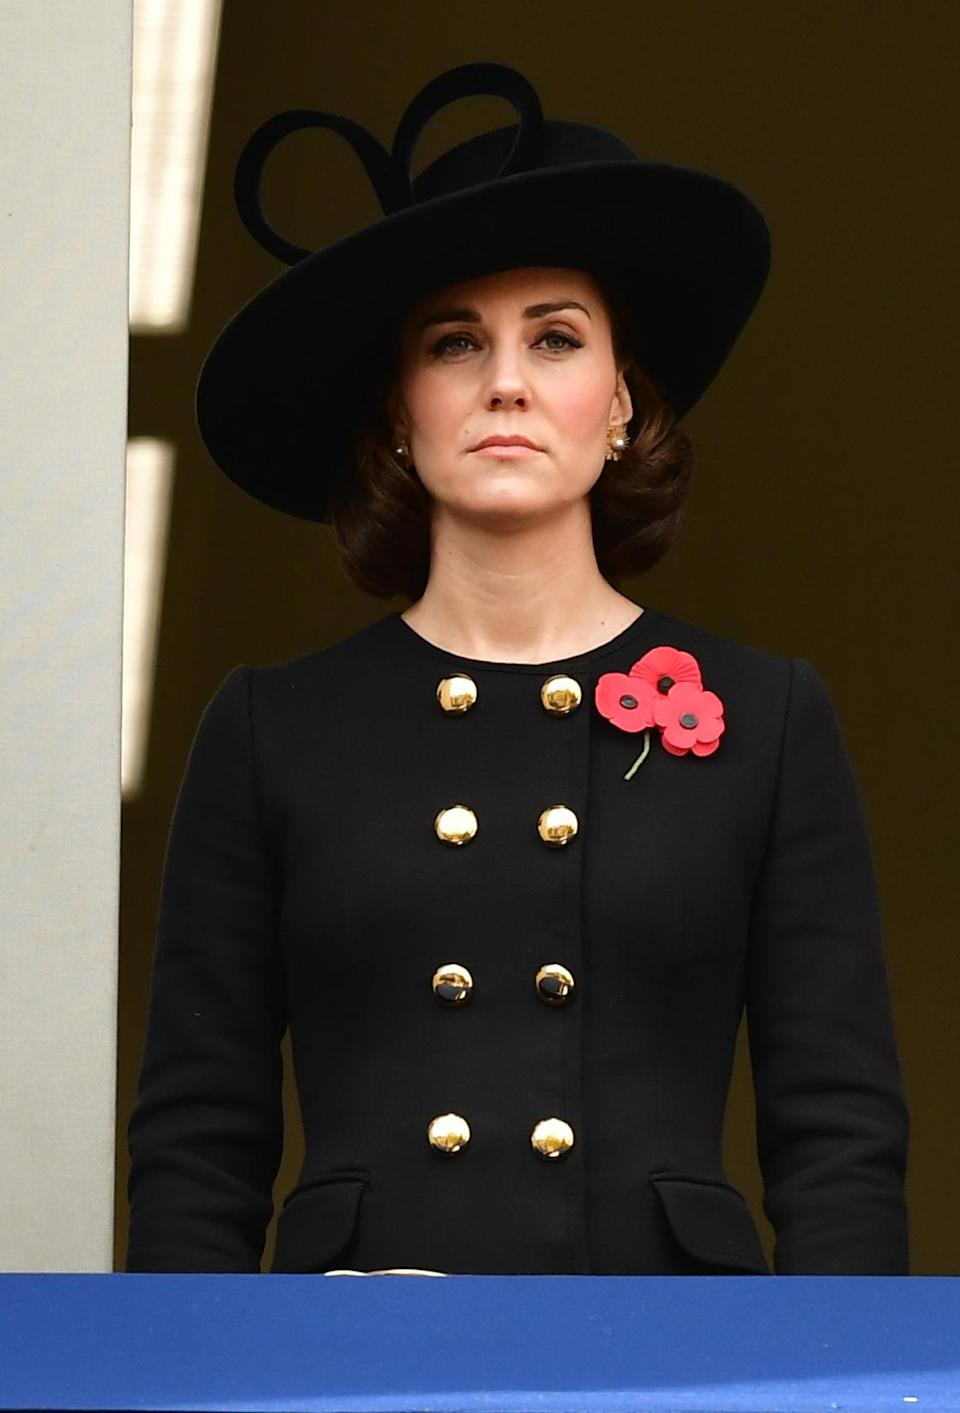 <p>Wearing a hat she's owned for over a decade and a chic, double breasted black coat dress, the Duchess looked suitably subtle and sophisticated for the Remembrance Sunday service in London. <em>[Photo: PA]</em> </p>